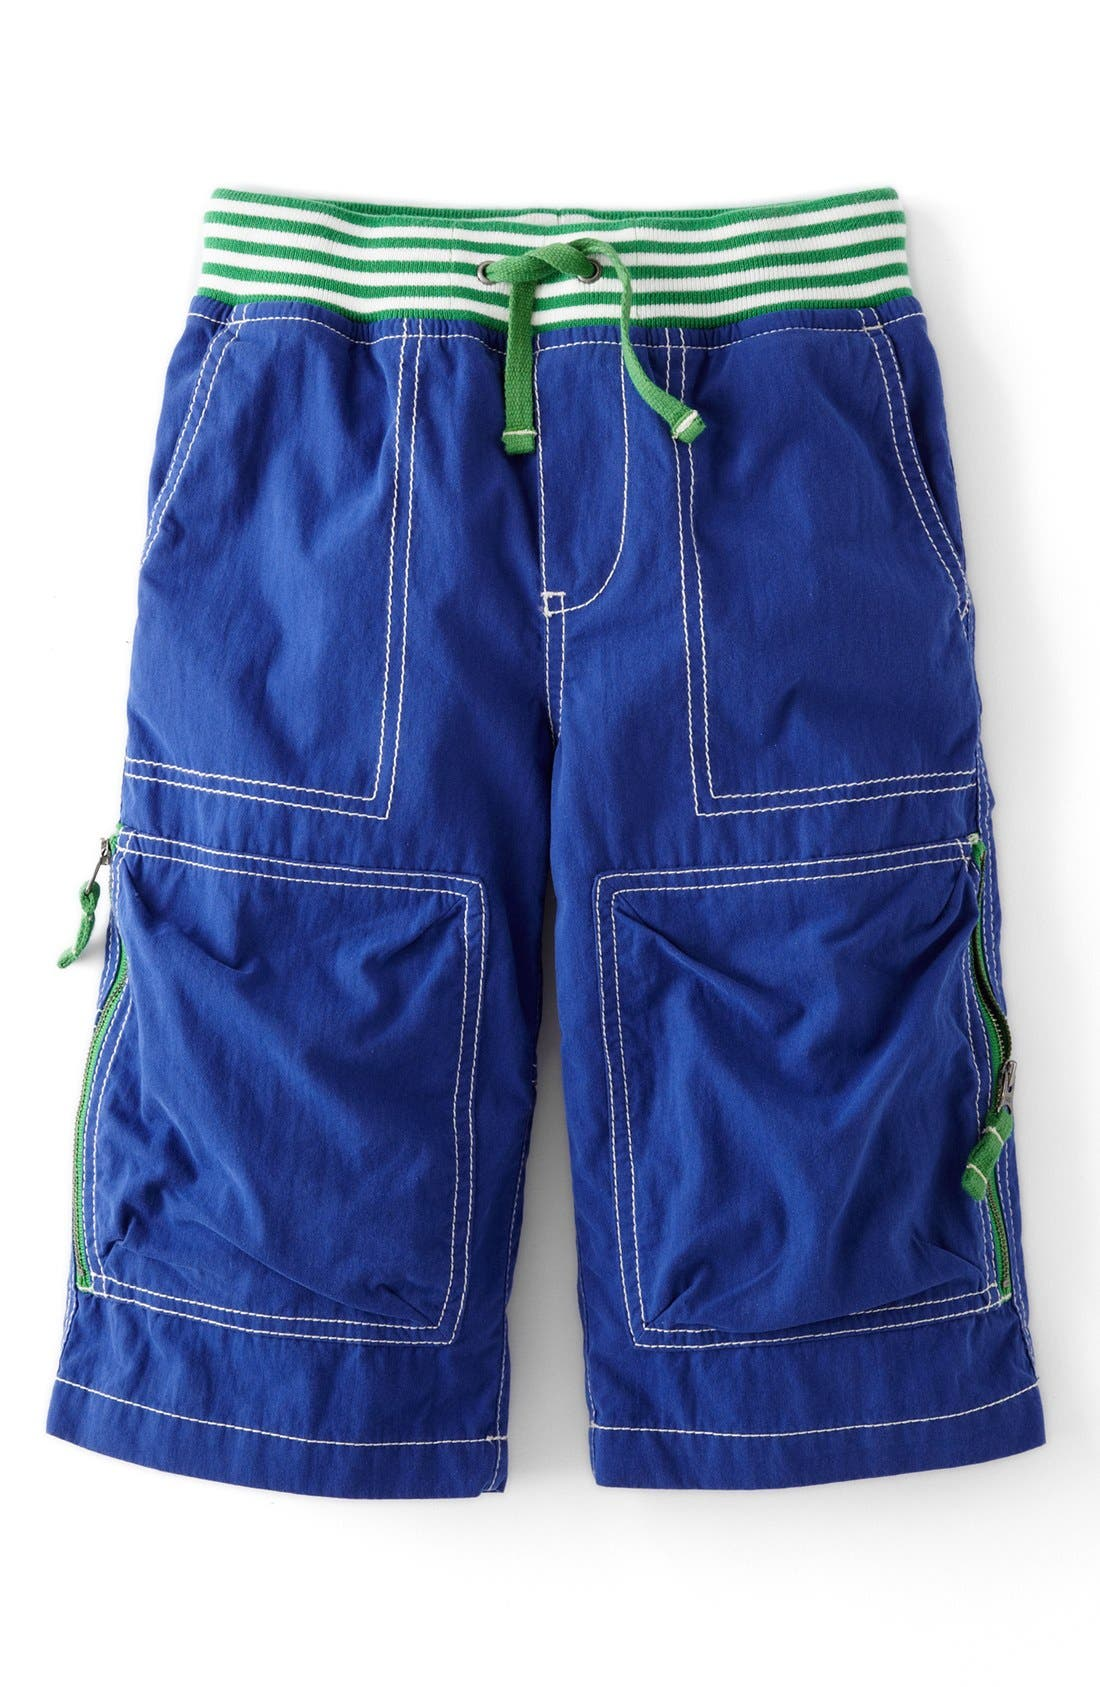 Alternate Image 1 Selected - Mini Boden 'Techno' Mid Calf Shorts (Toddler Boys)